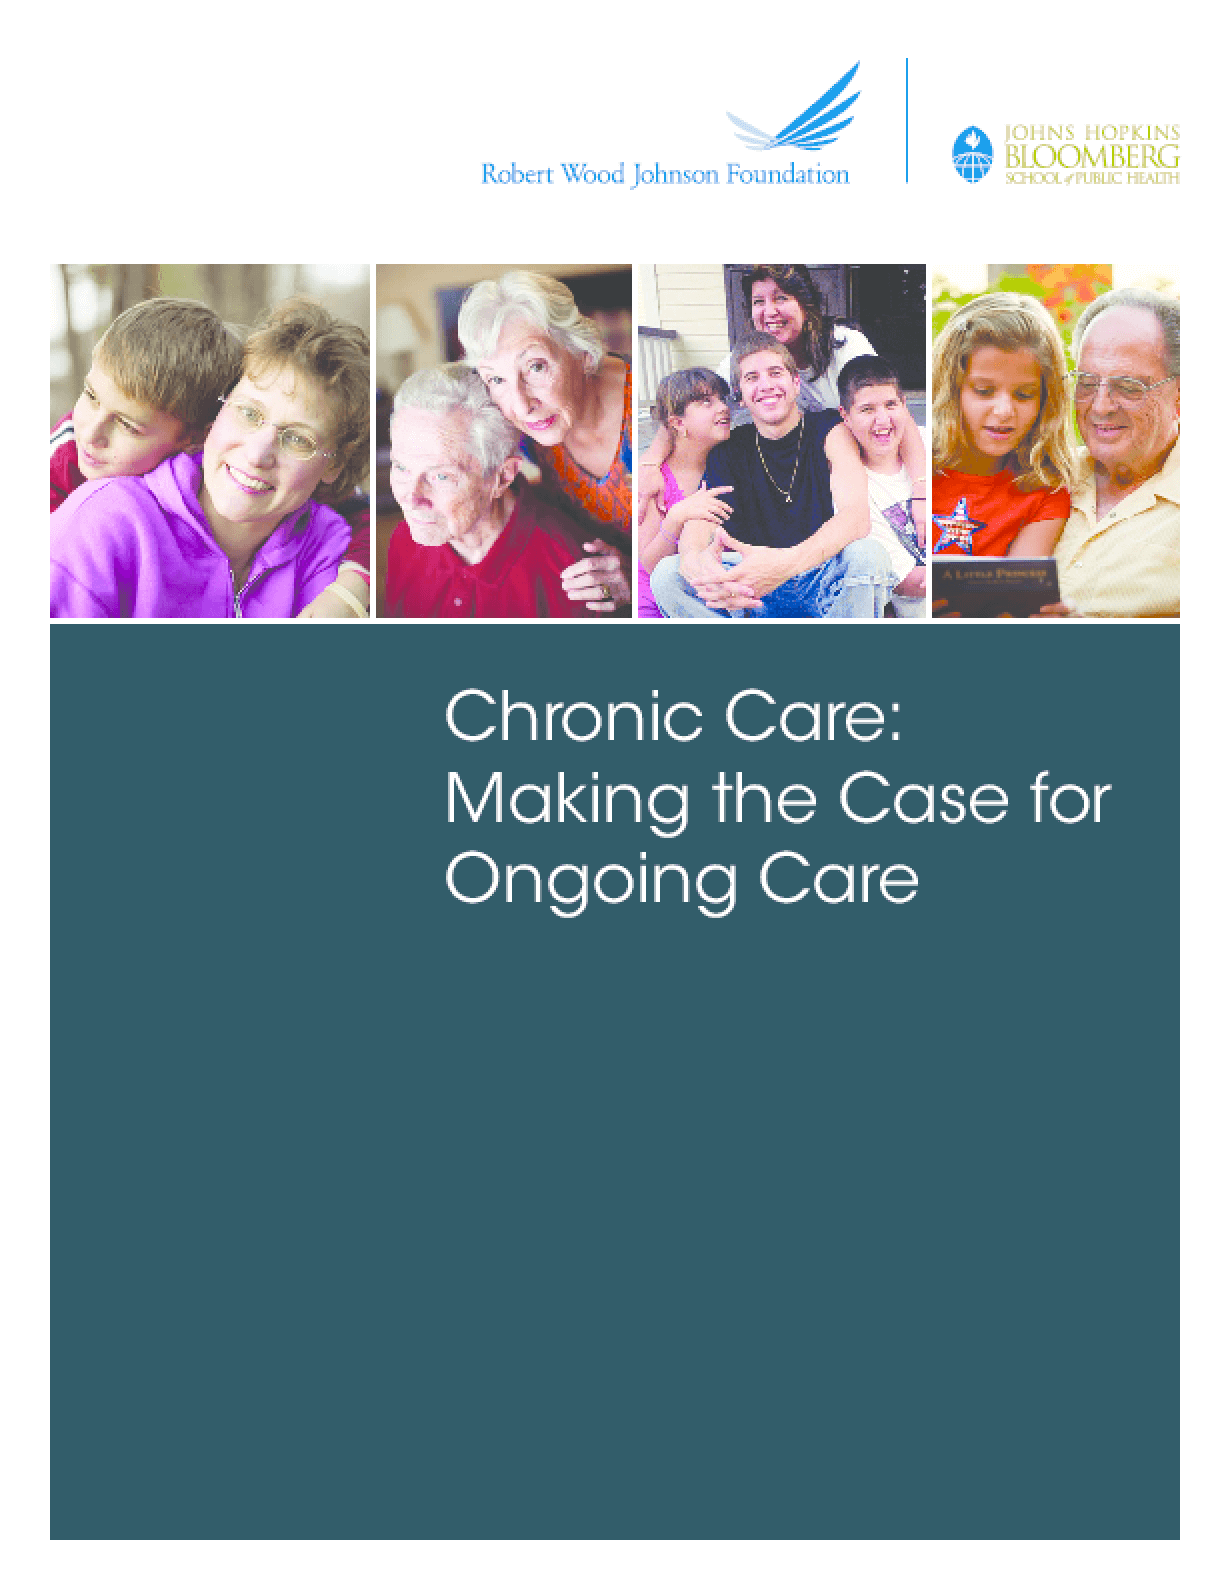 Chronic Care: Making the Case for Ongoing Care